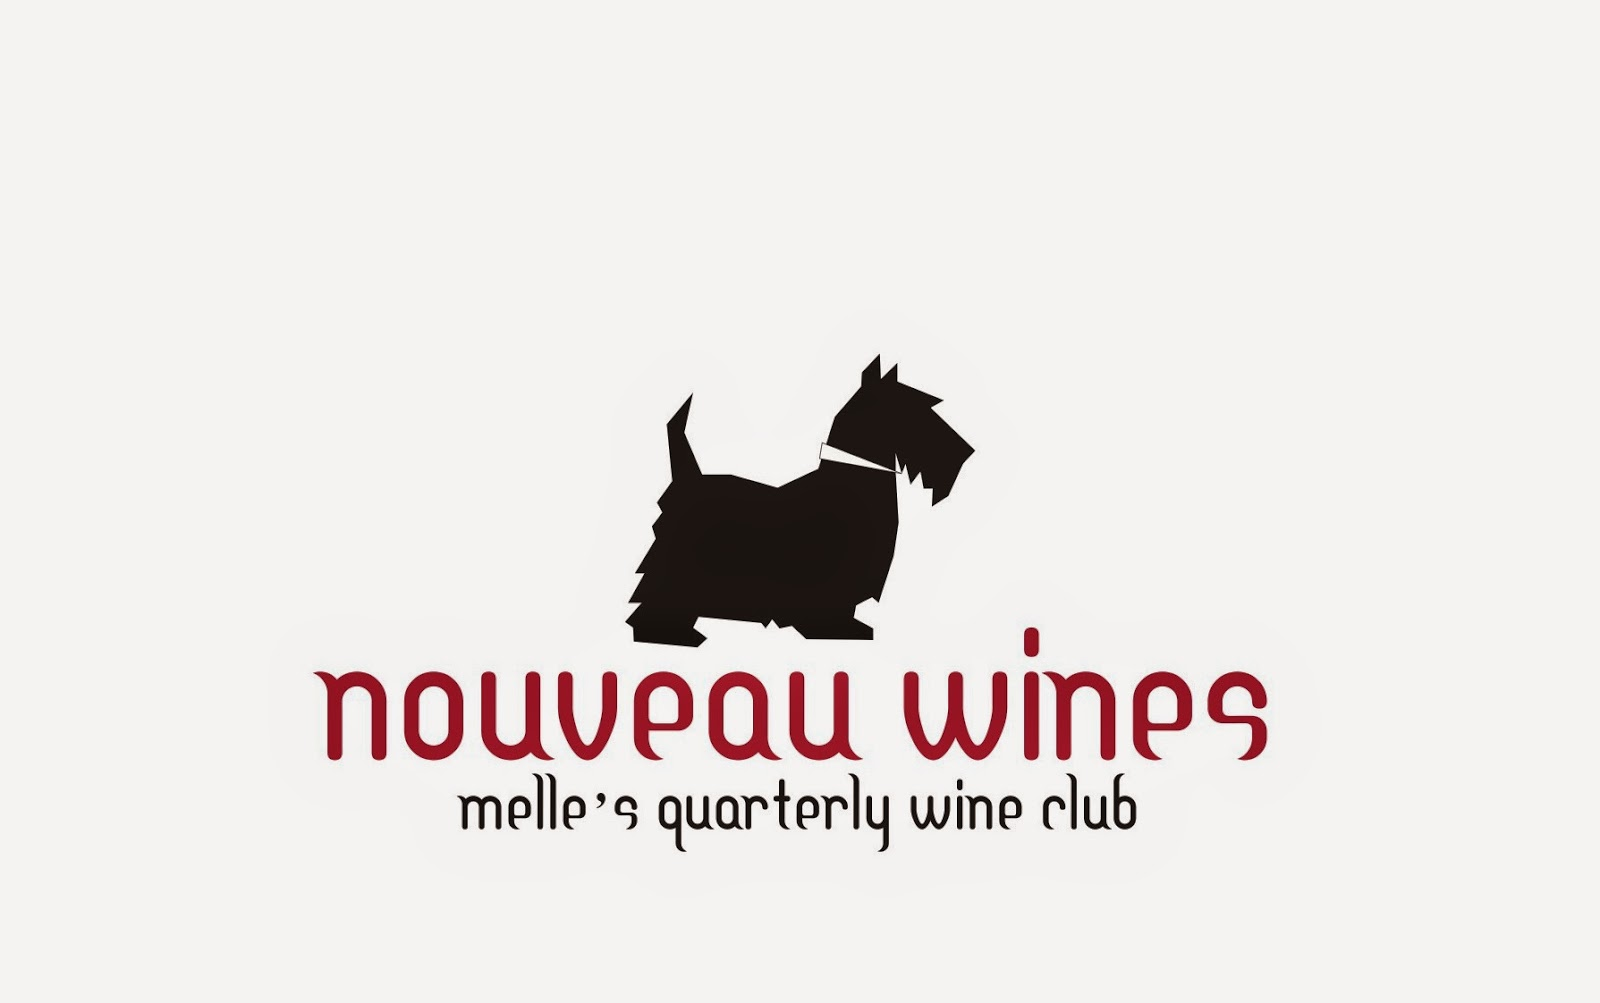 nouveau aines melle's quarterly wine club